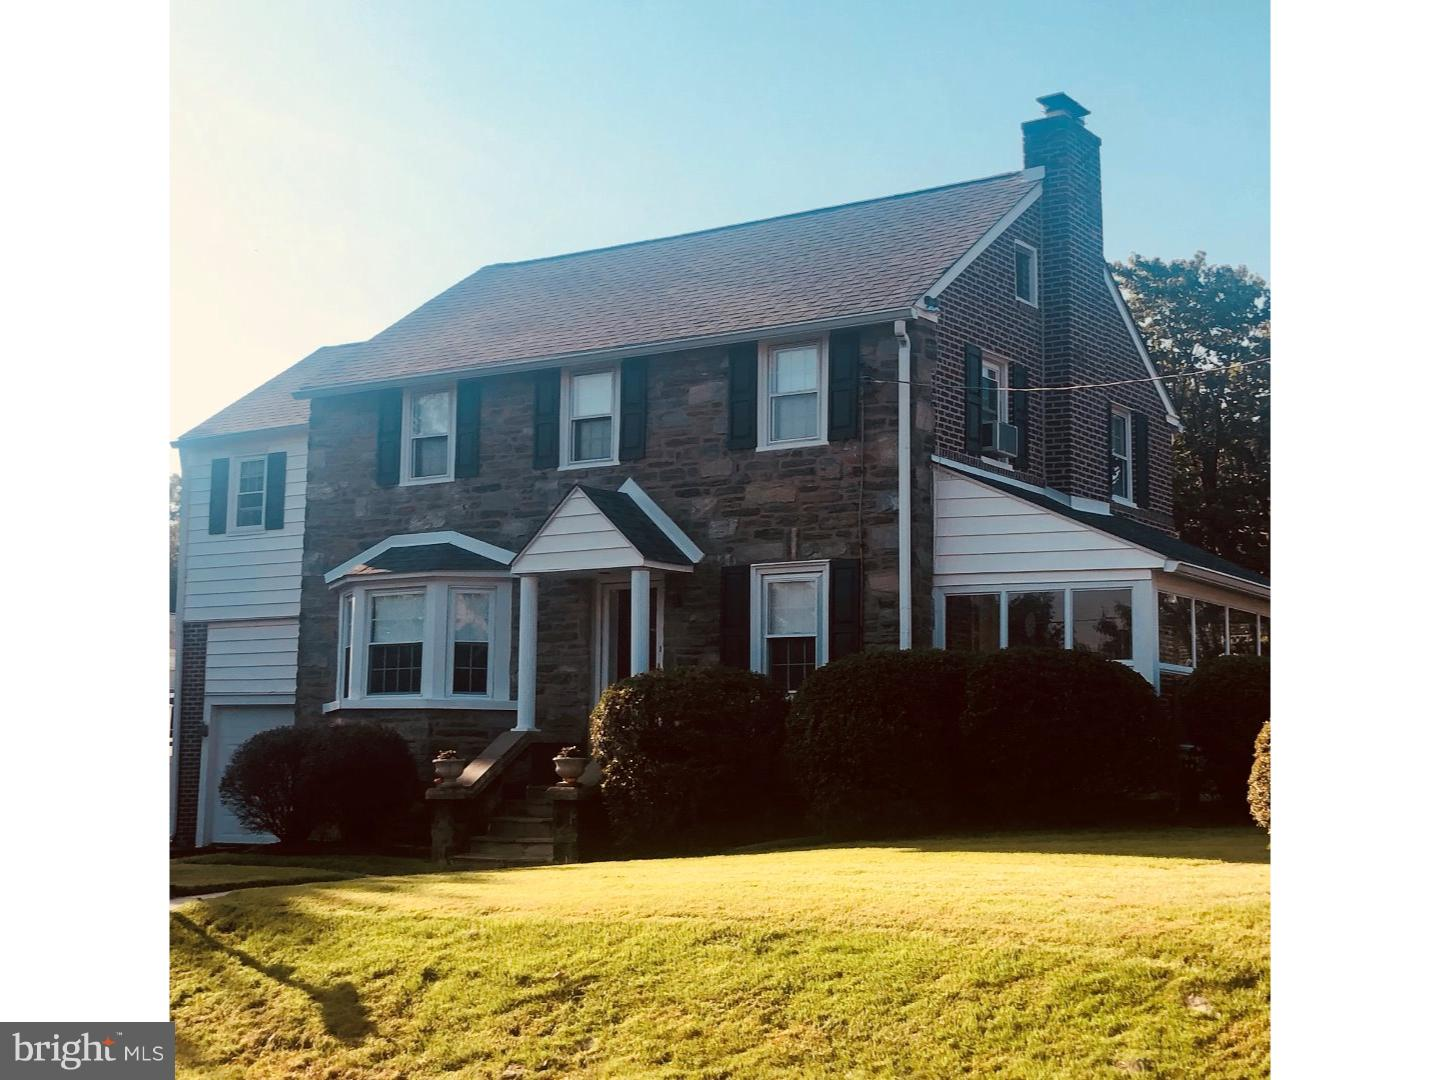 101 Milard Lane Havertown, PA 19083